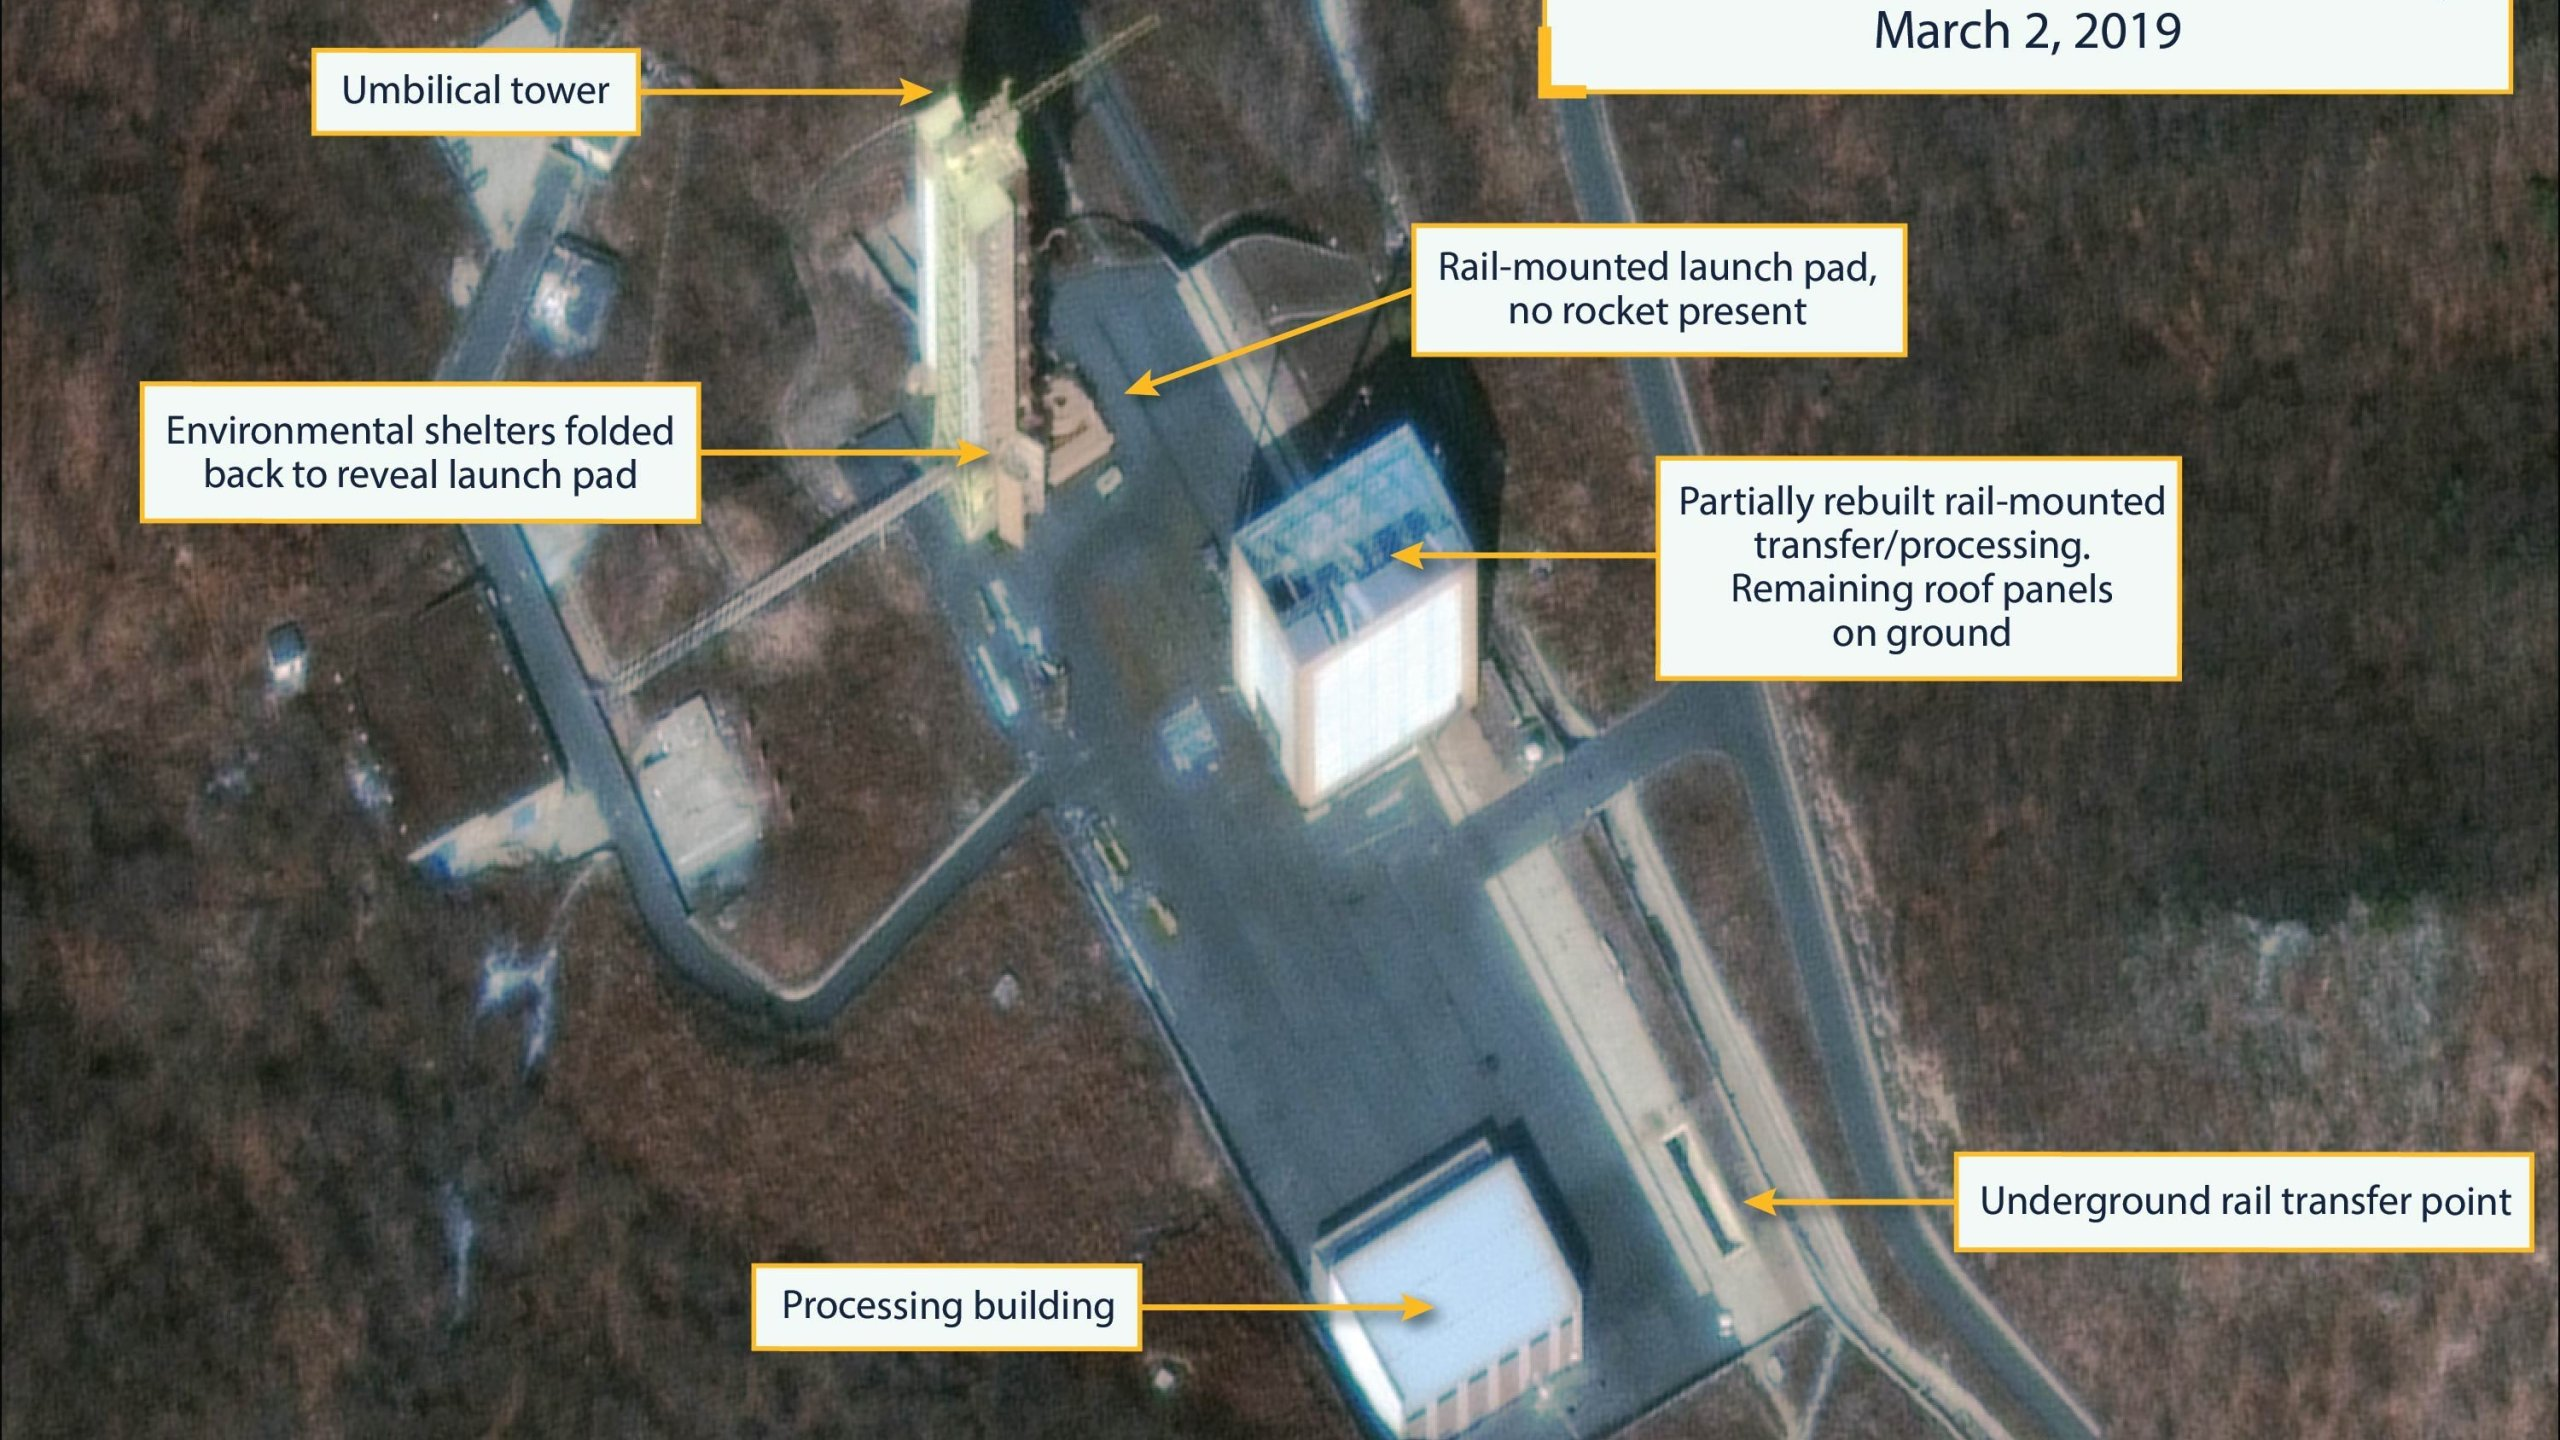 Commercial satellite imagery acquired on March 2, 2019 by the Center for Strategic International Studies and Beyond Parallel shows that North Korea is pursuing a rapid rebuilding of the long-range rocket site at Sohae. (Credit: CNN)